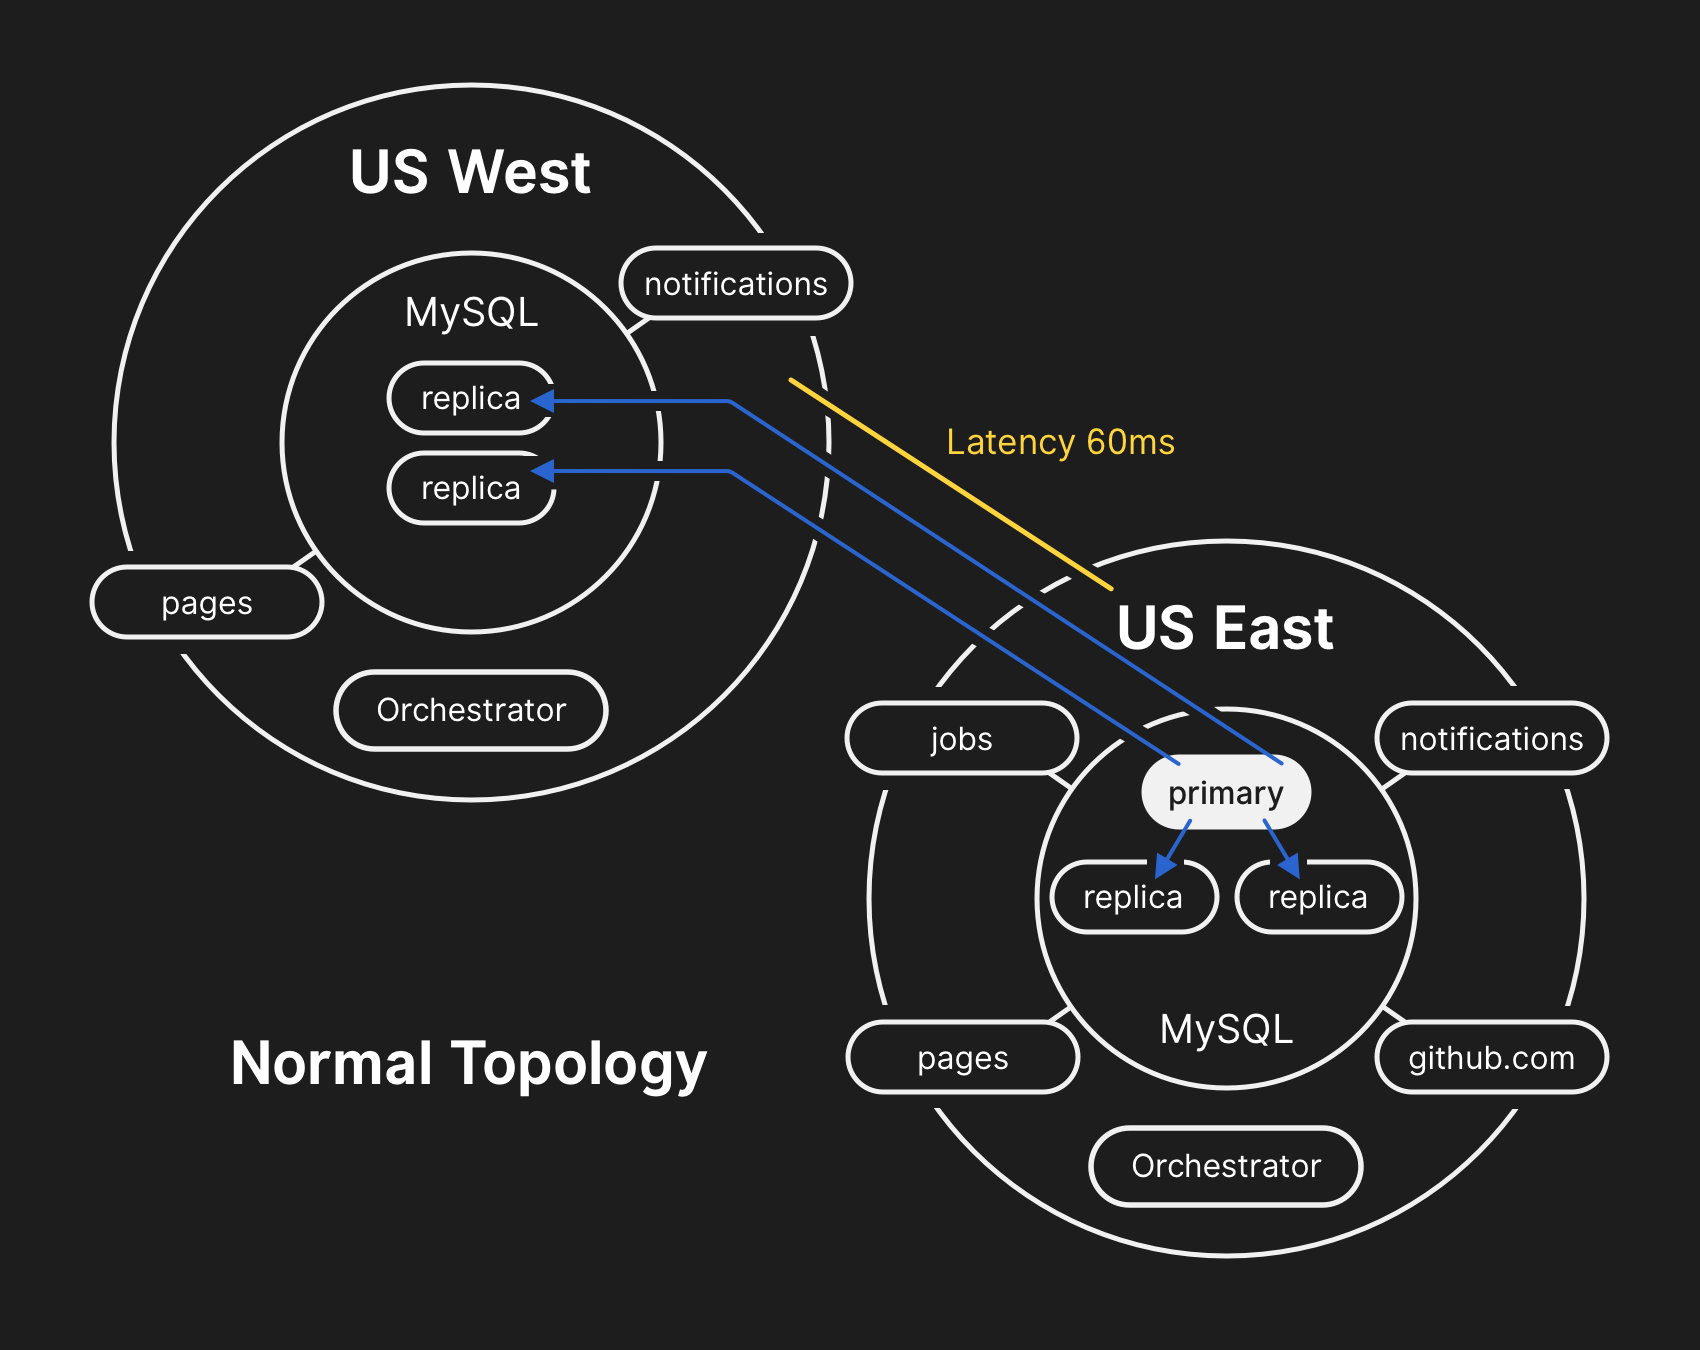 In the normal topology, all apps perform reads locally with low latency.